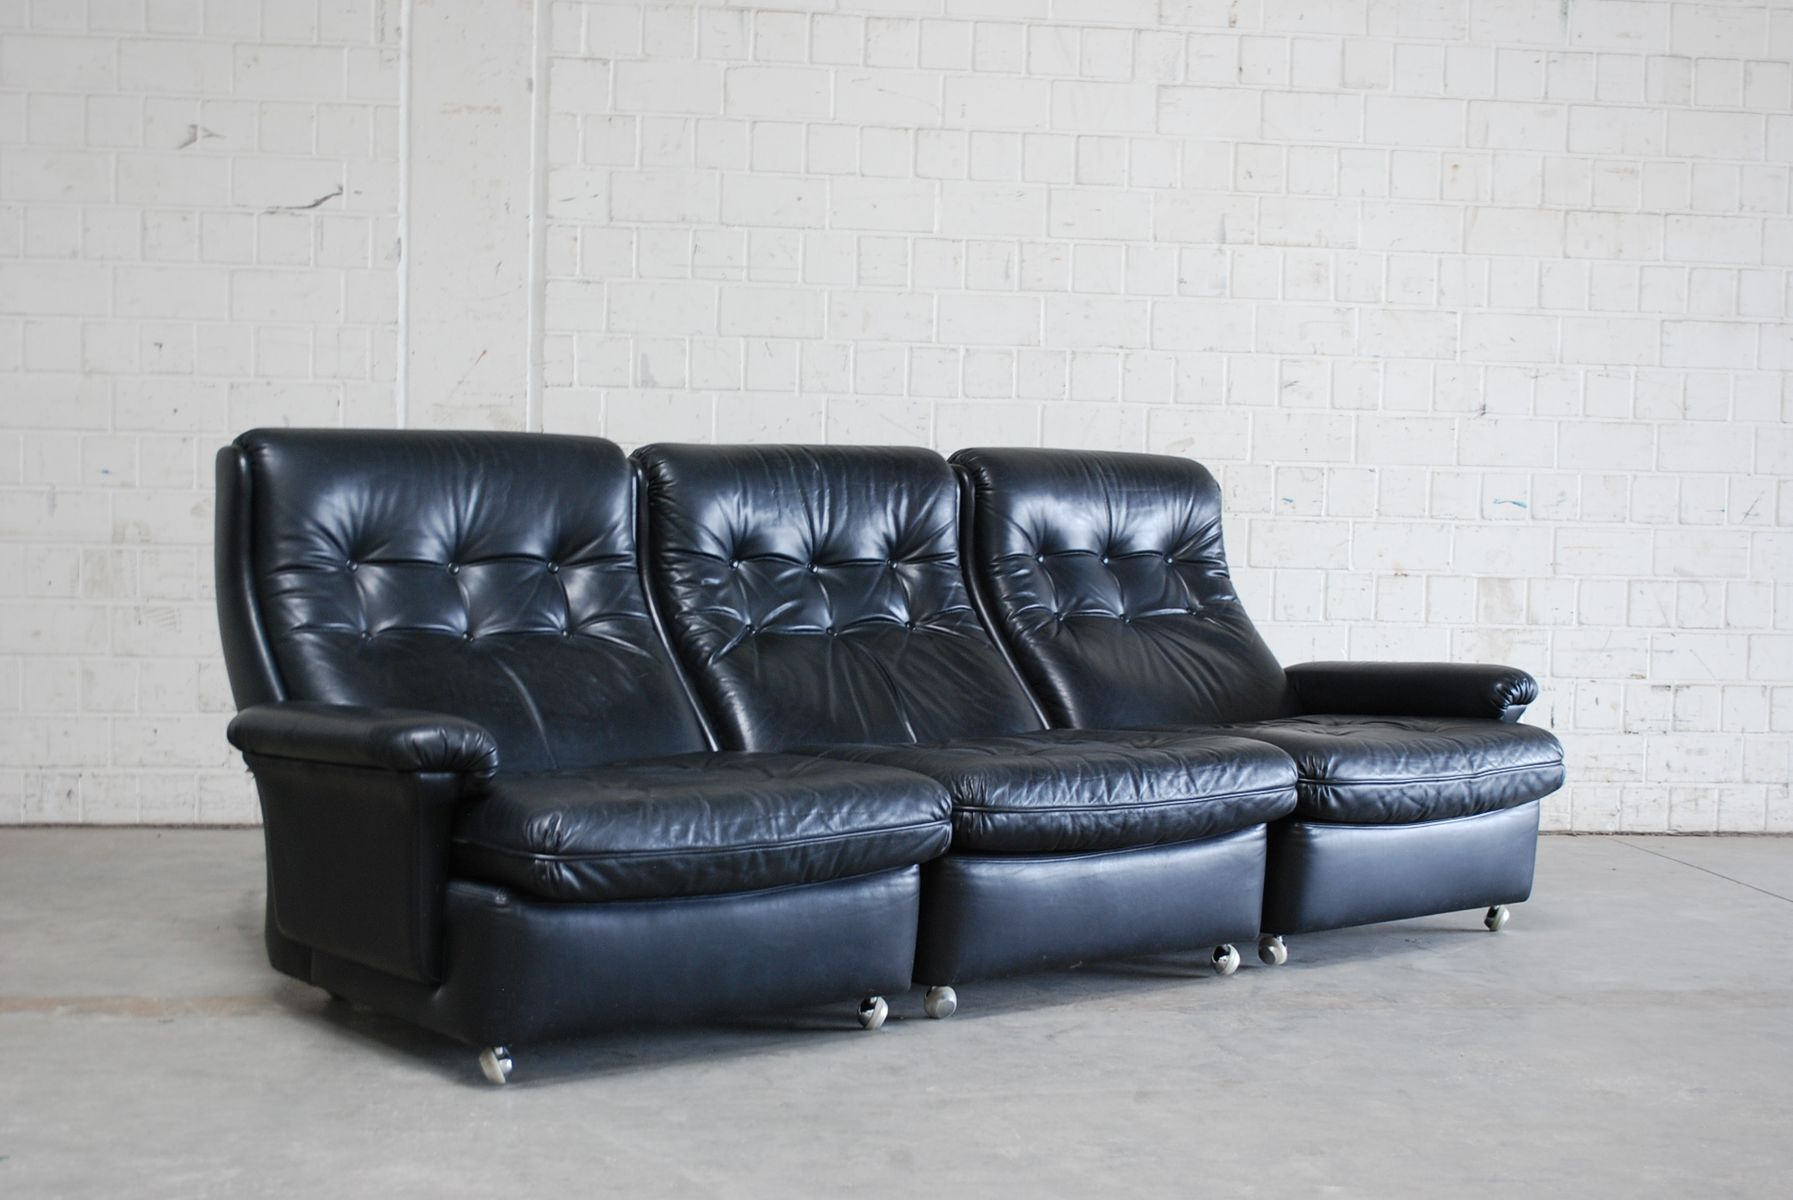 living room suite leather sofa 2 lounge chairs and 2 ottomans from